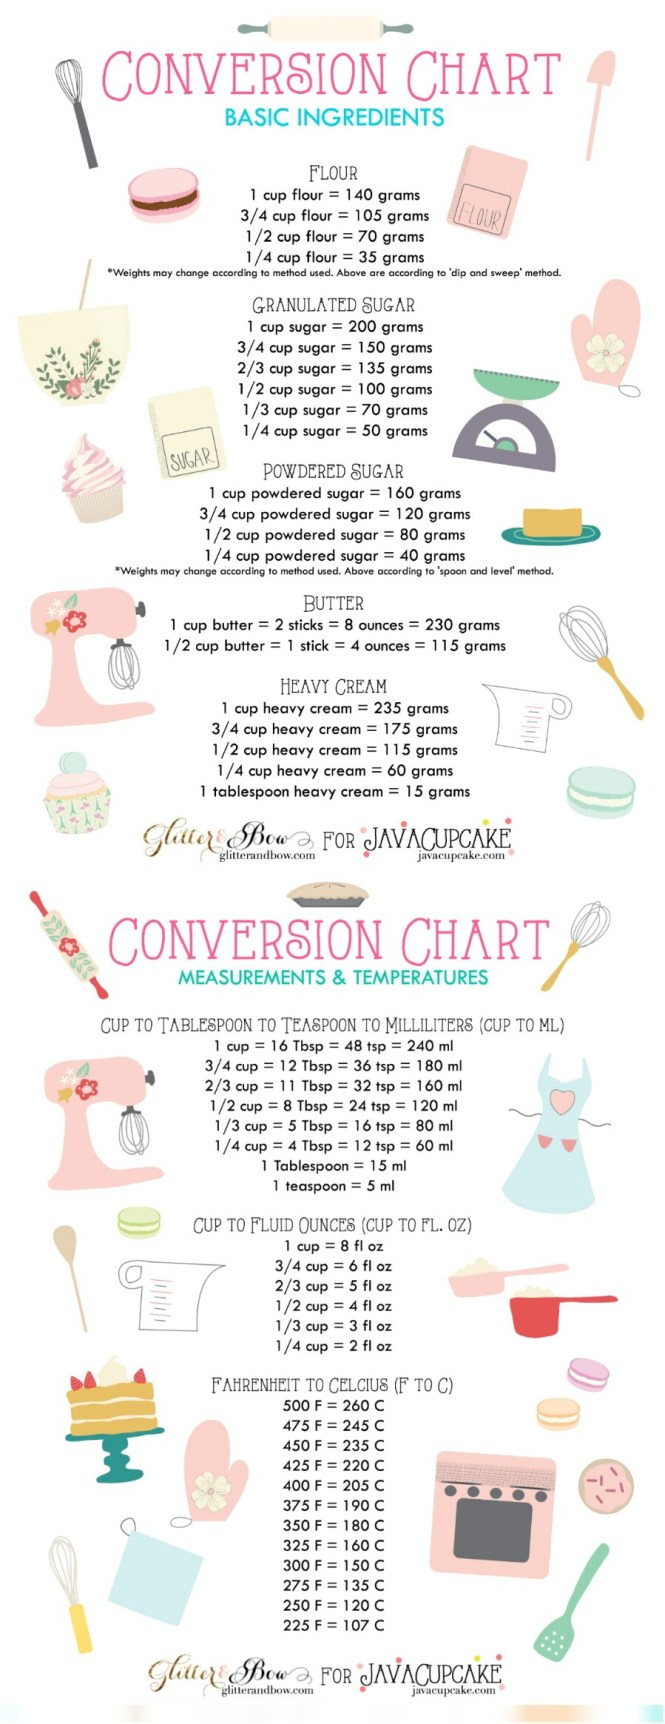 Tsp conversion chart gallery free any chart examples tsp conversion chart choice image free any chart examples gram conversion chart for cooking images free nvjuhfo Gallery